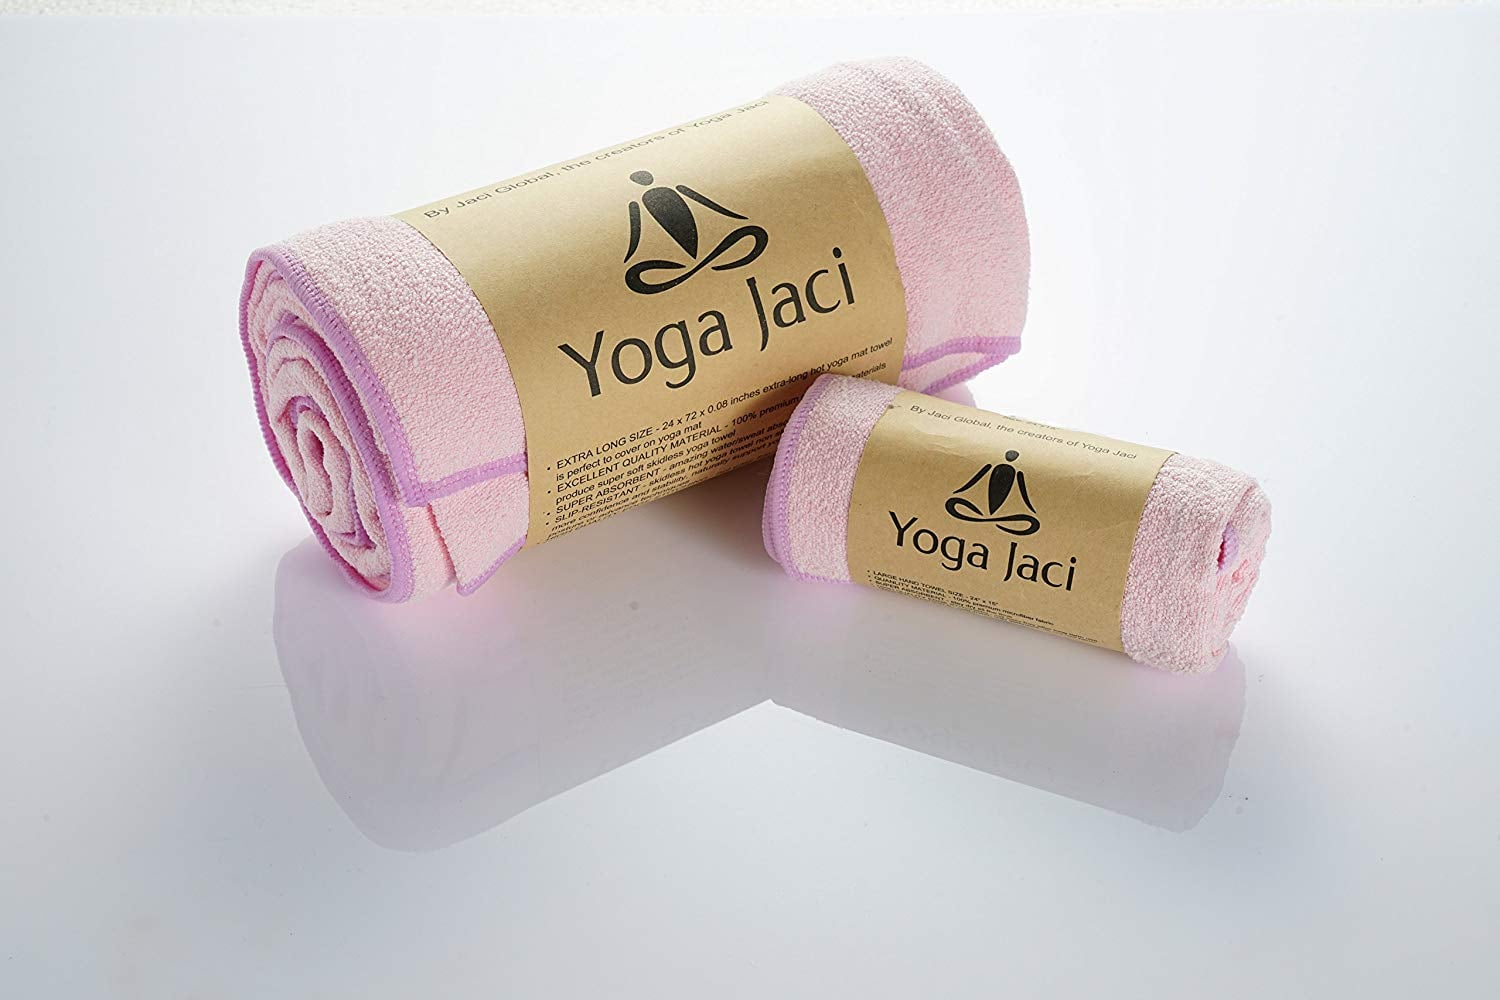 Yoga Jaci Yoga Mat Towel and Hand Towel Combo Set | Your Yoga-Obsessed  Friend Will Love These Strangely Practical Gifts | POPSUGAR Fitness Photo 2